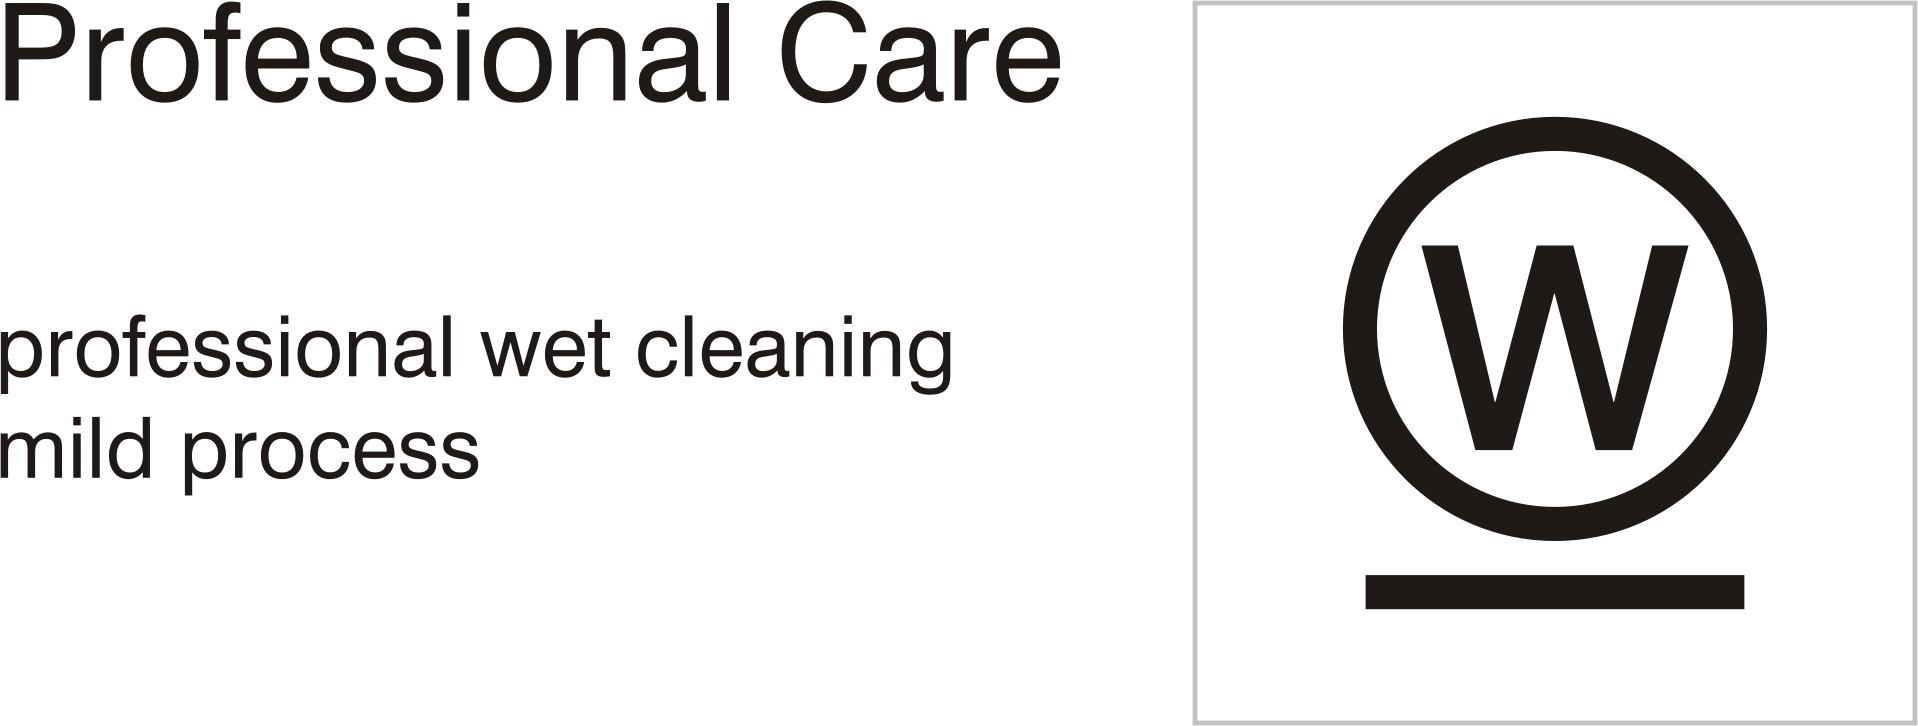 Care symbols, professional care: wet clean - mild process by Vanja